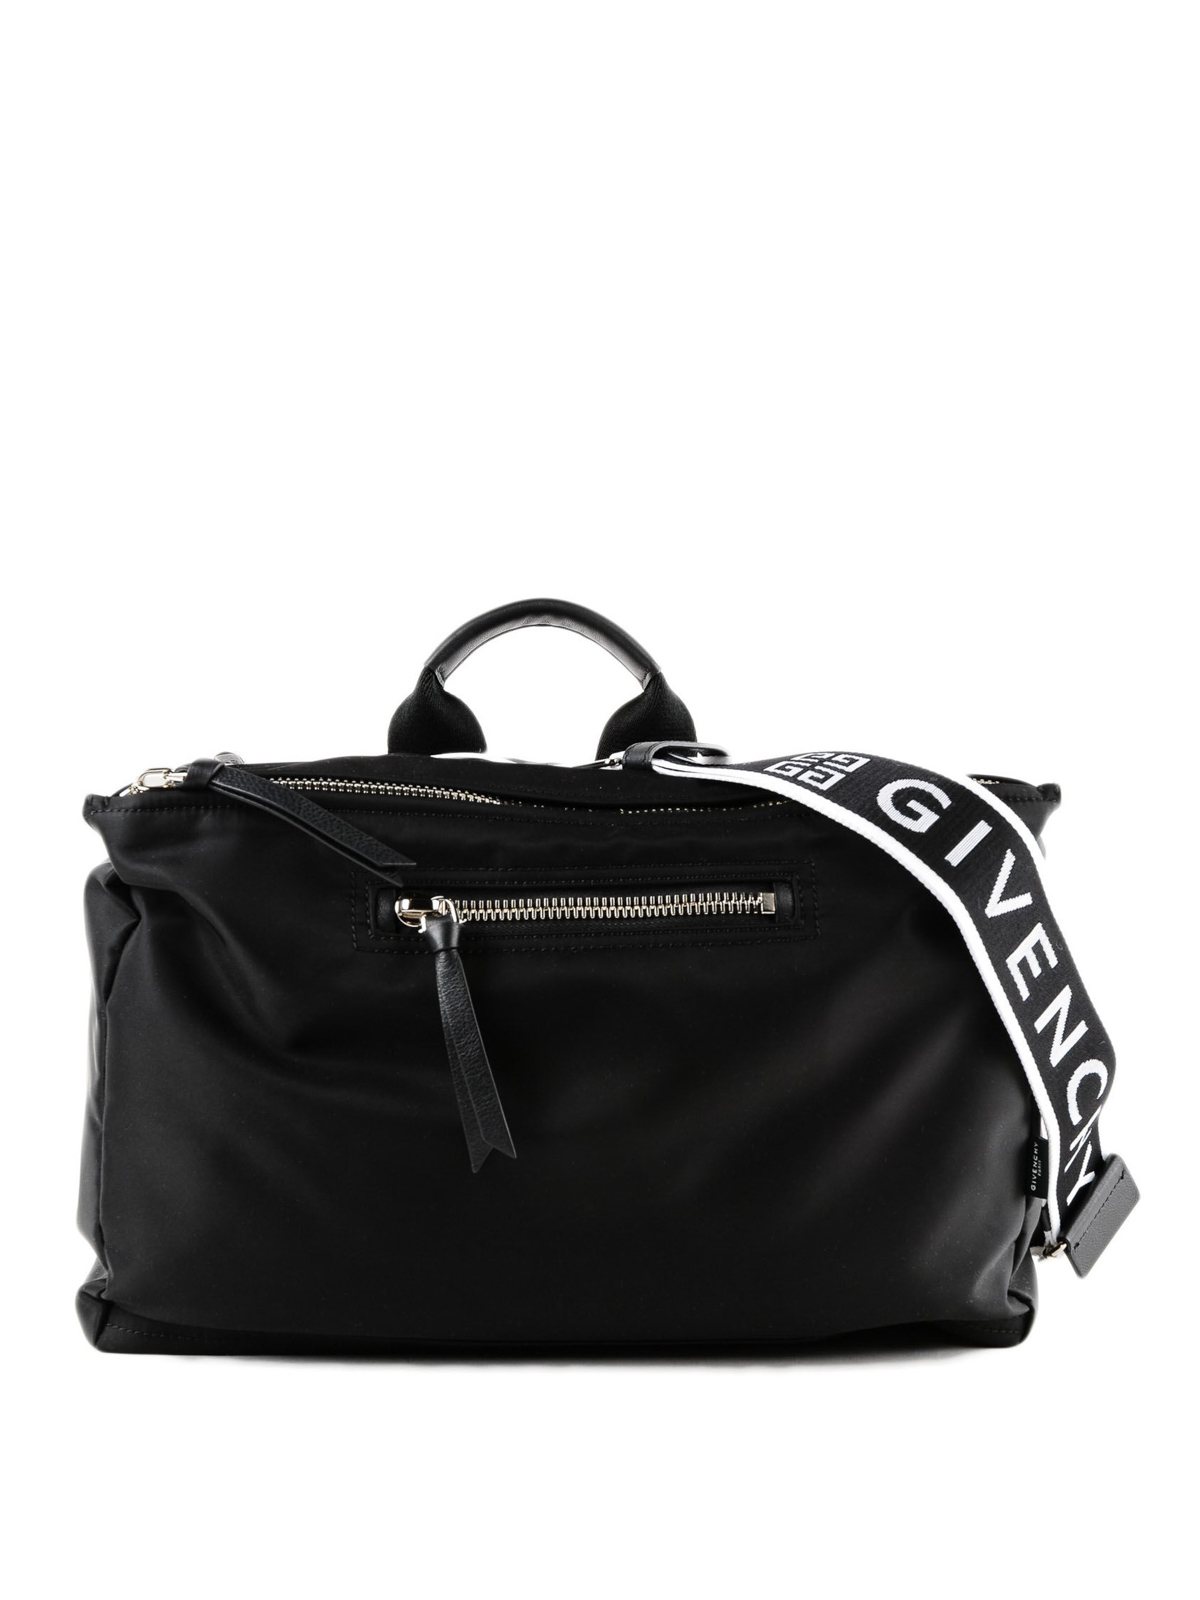 Givenchy - Pandora black tech fabric messenger bag - shoulder bags ... 6461fb8c4c187